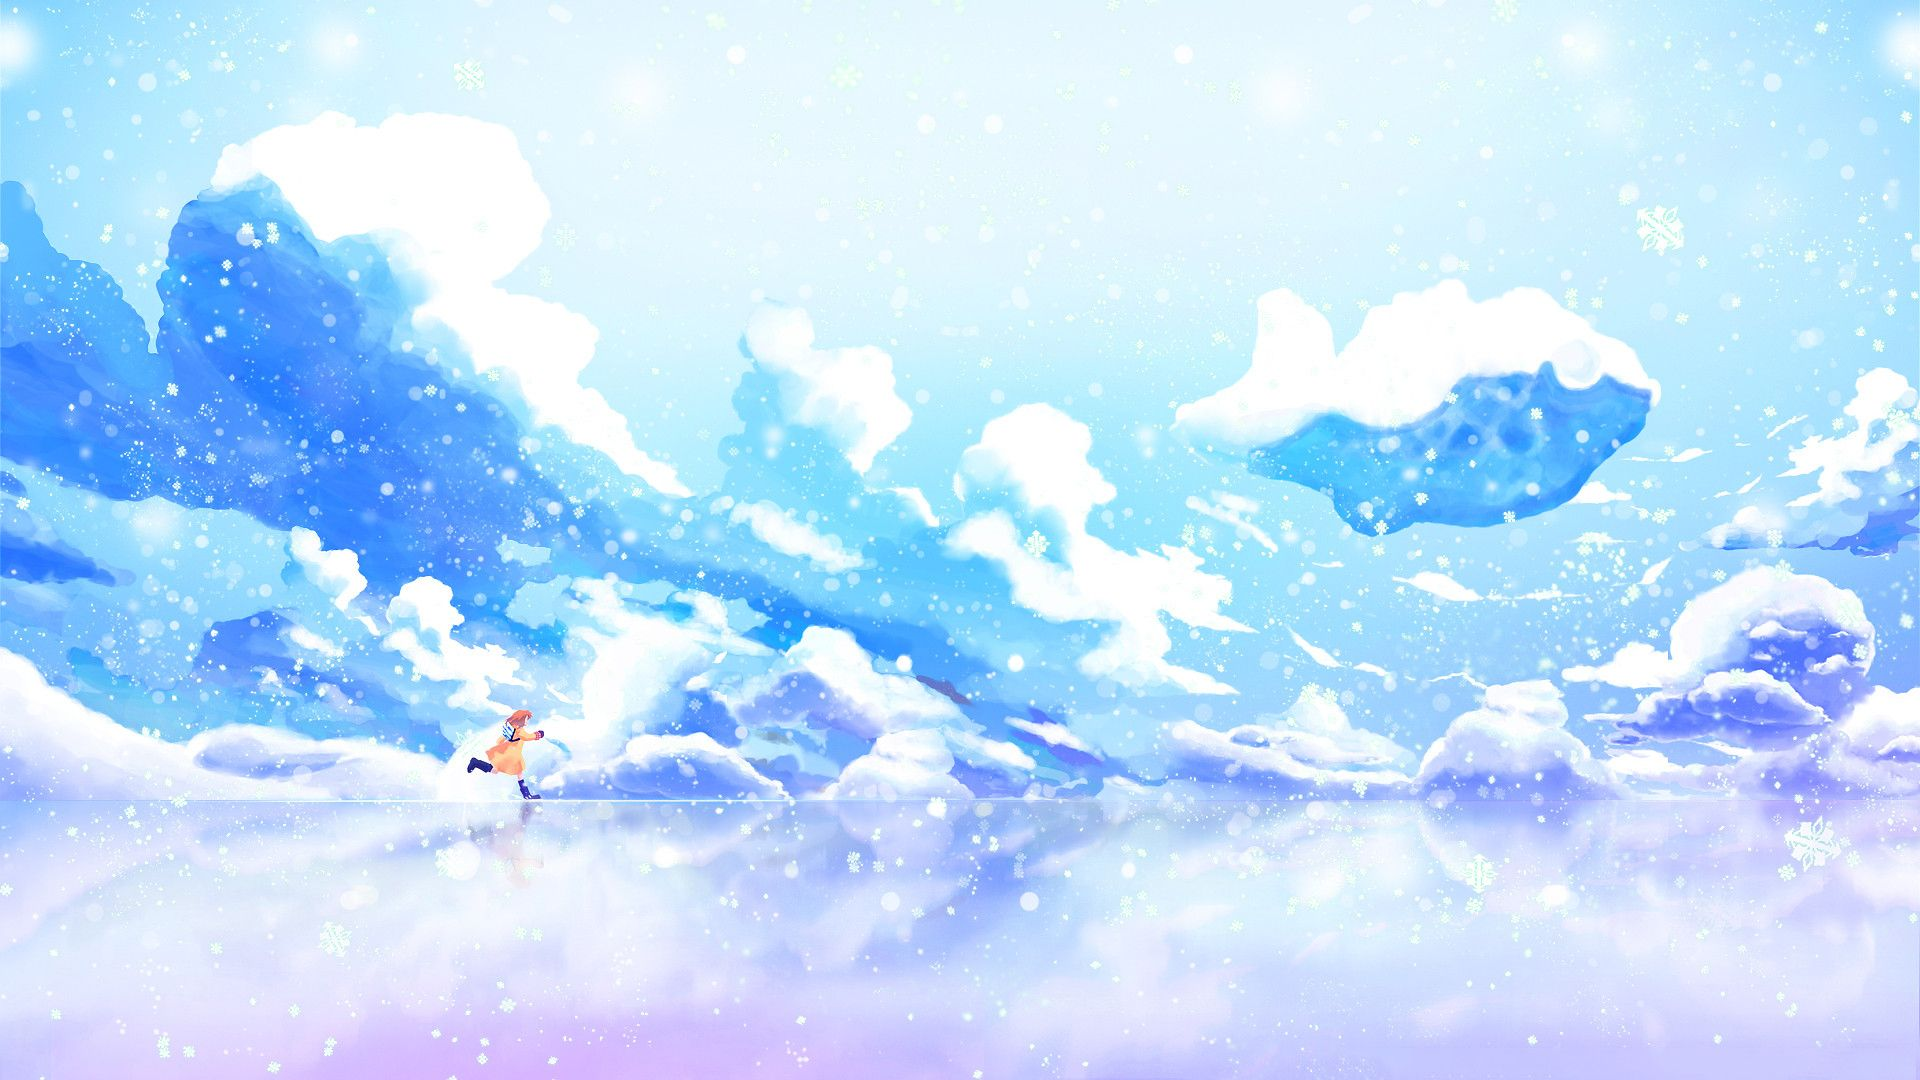 Anime Scenery Ice Free Wallpaper Desktop 27289 Wallpaper